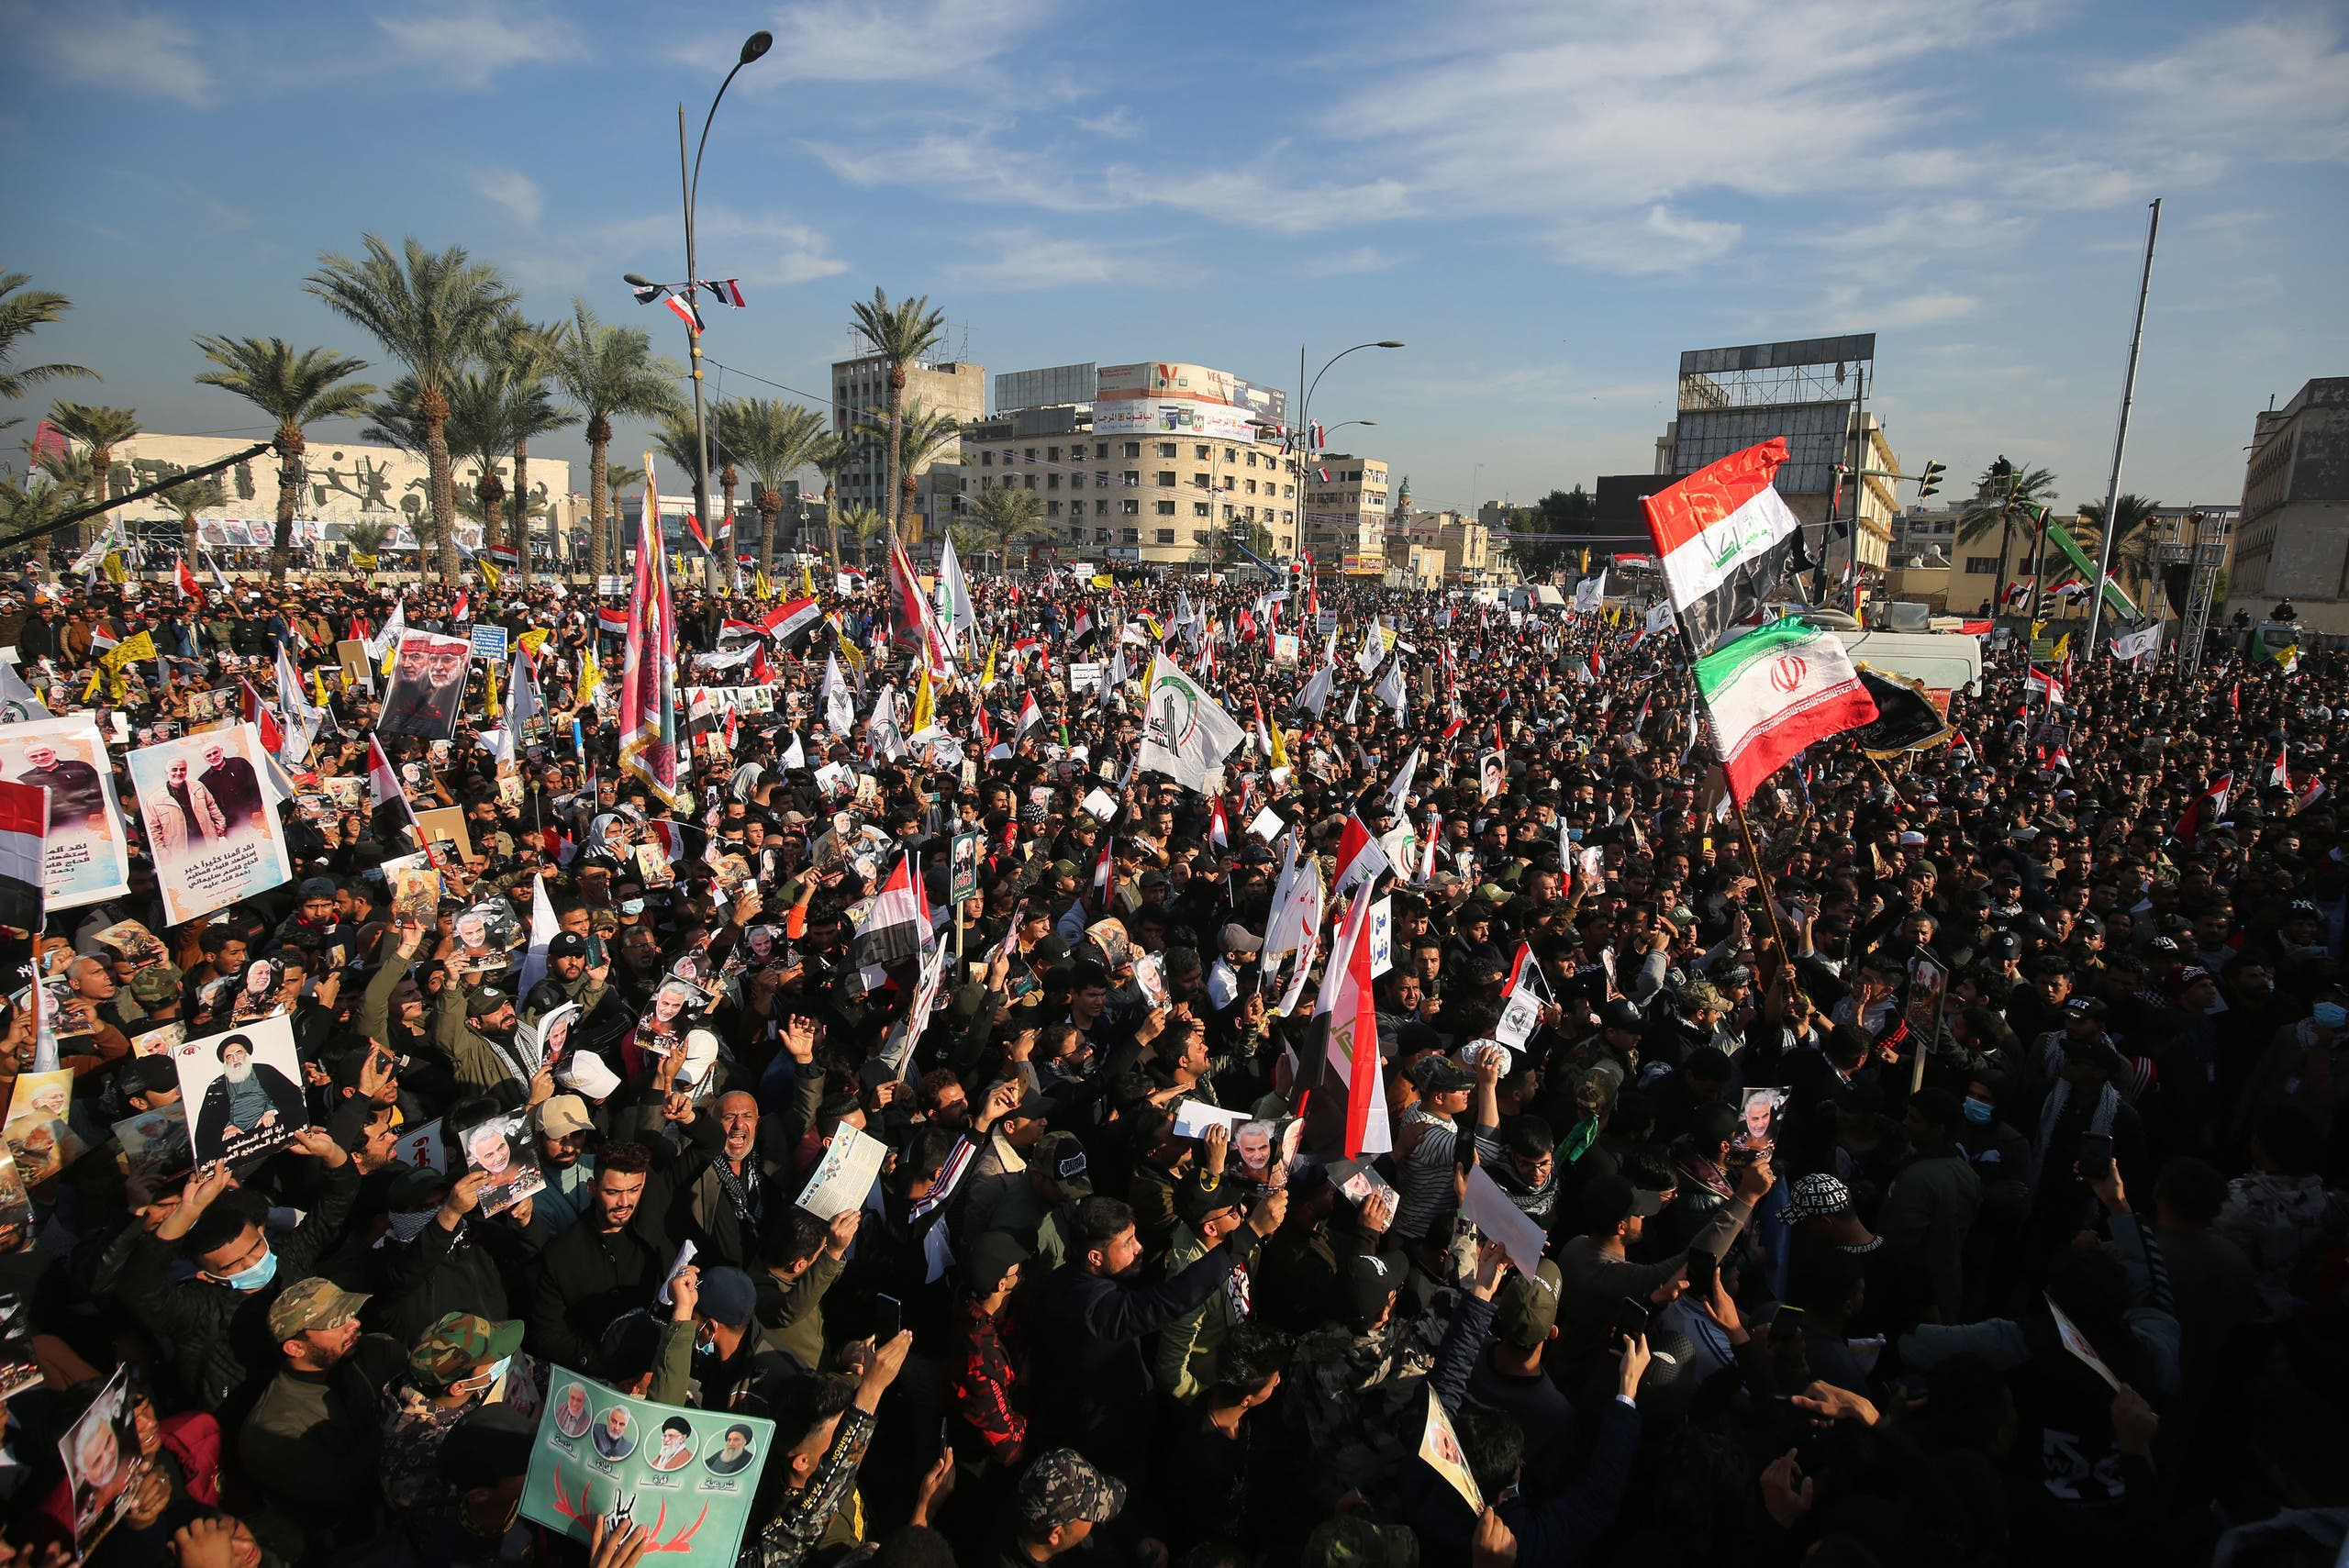 Iraqi demonstrators rally in Tahrir square in Baghdad on January 3, 2021, to mark the anniversary of the death of Qasem Soleimani. (AFP)